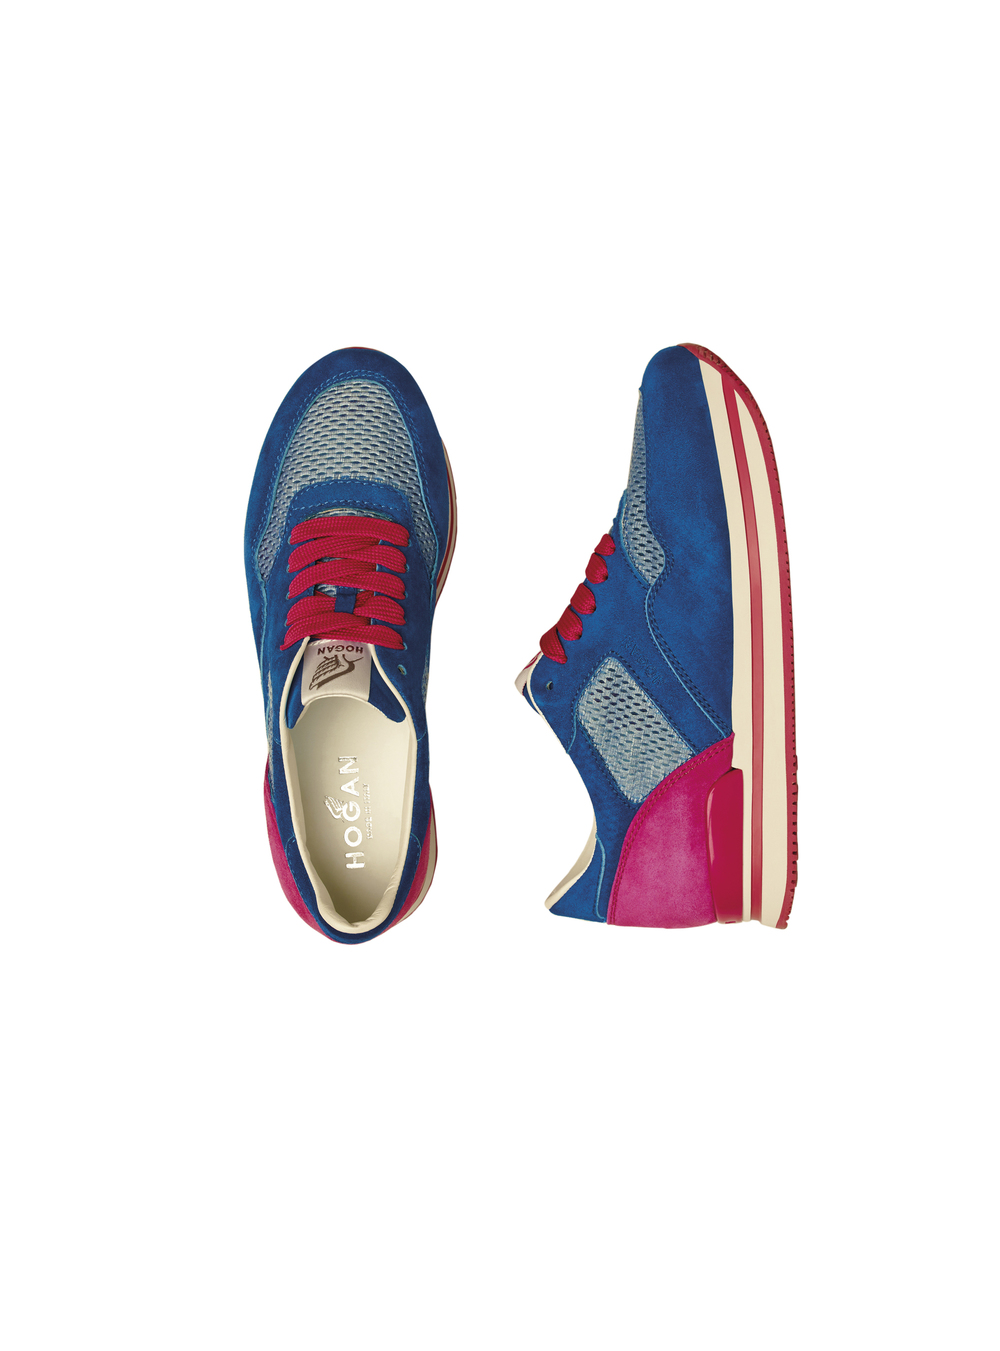 30-the H222 sneaker in royal blue and candy suede.jpg